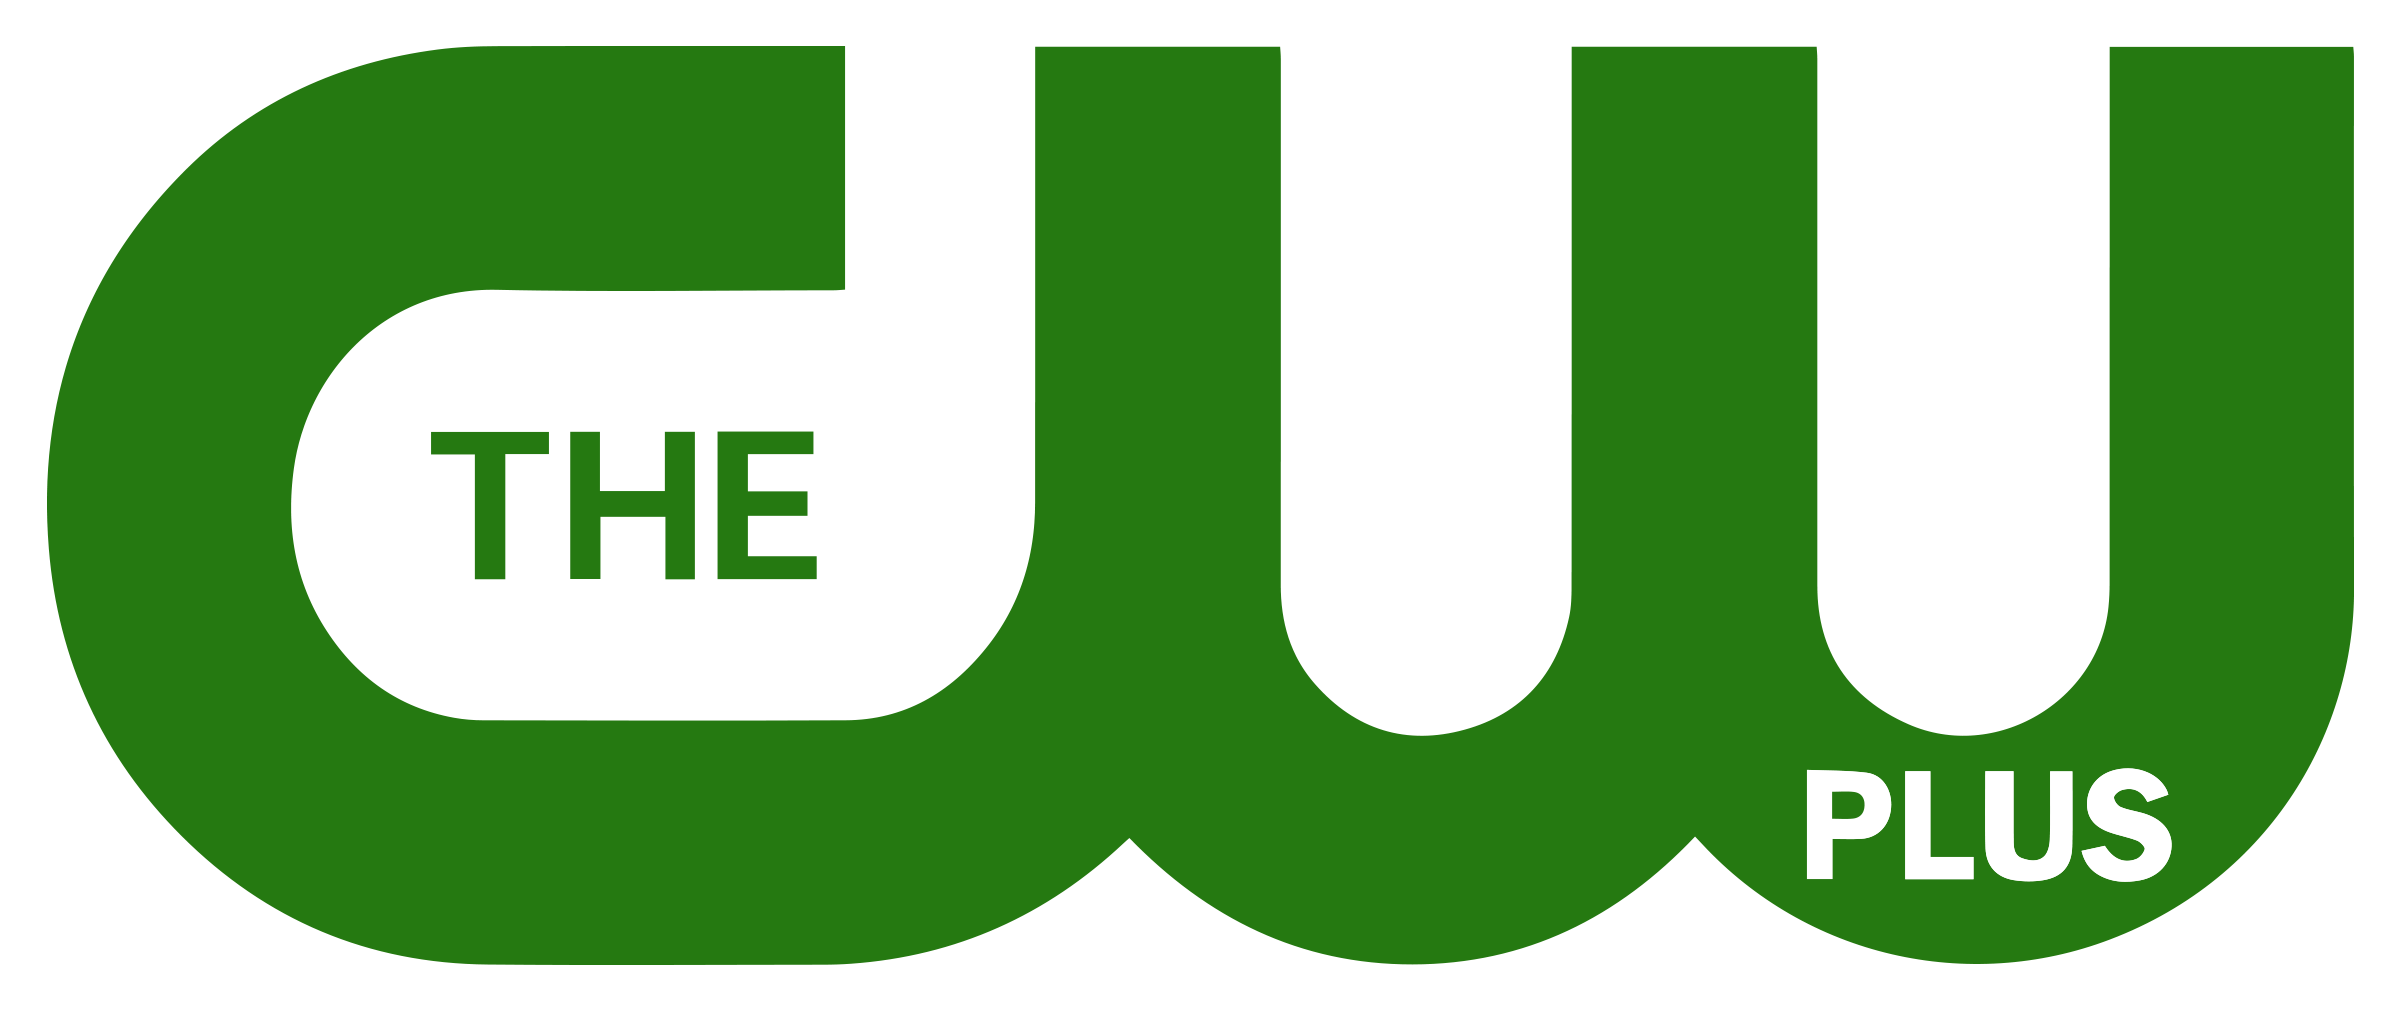 graphic relating to Dish Top 120 Plus Printable Channel List known as The CW Additionally - Wikipedia